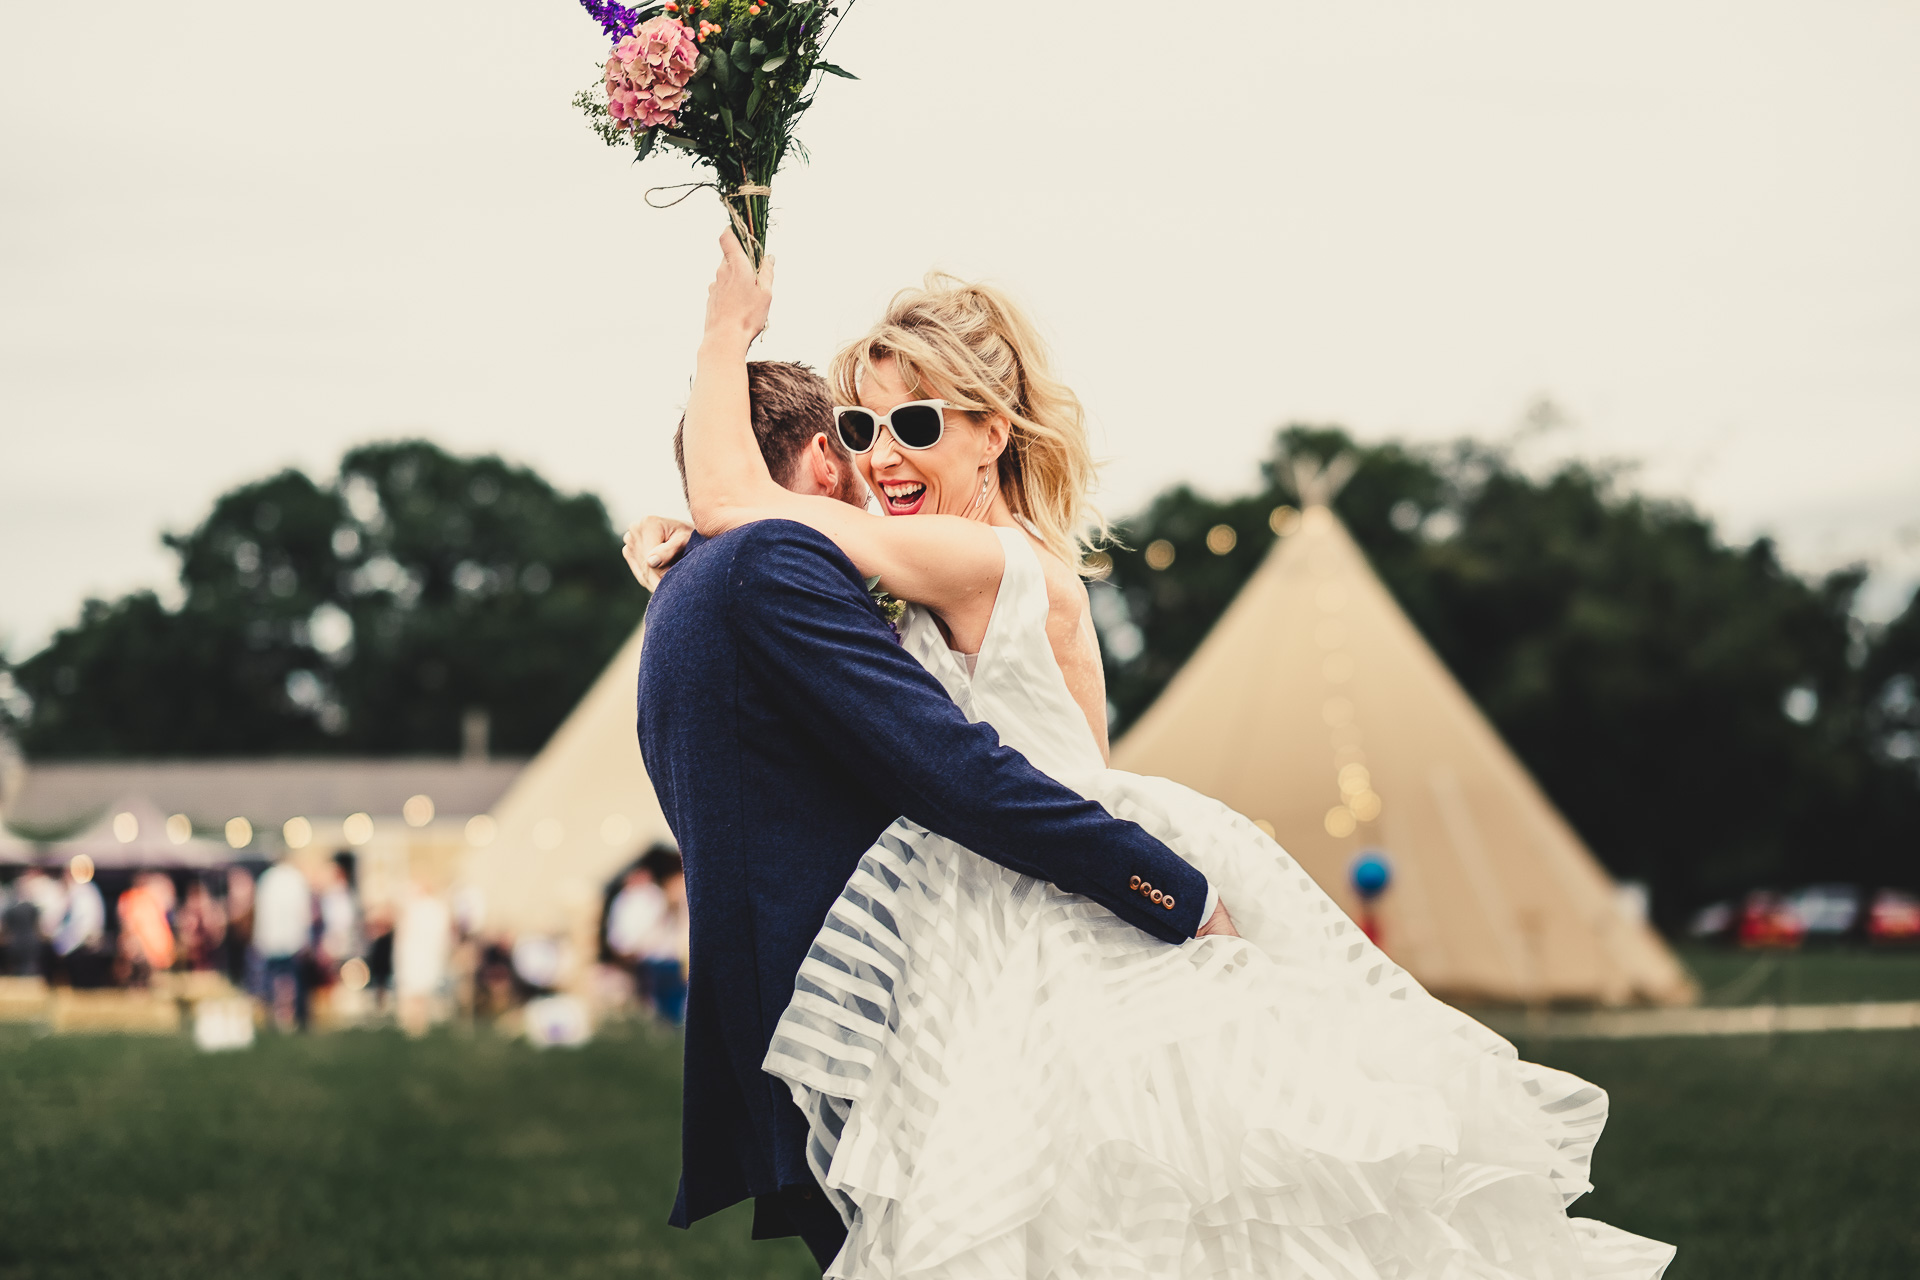 MANCHESTER WEDDING PHOTOGRAPHER, AYESHA PHOTOGRAPHY, CREATIVE MANCHESTER WEDDING PHOTOGRAPHER, CHESHIRE WEDDING PHOTOGRAPHER, DESTINATION WEDDING PHOTOGRAPHER, STYLISH WEDDING PHOTOGRAPHY, FESTIVAL WEDDING PHOTOGRAPHER, FESTIVAL WEDDING, BOHO WEDDING, TIPI WEDDING CHESHIRE